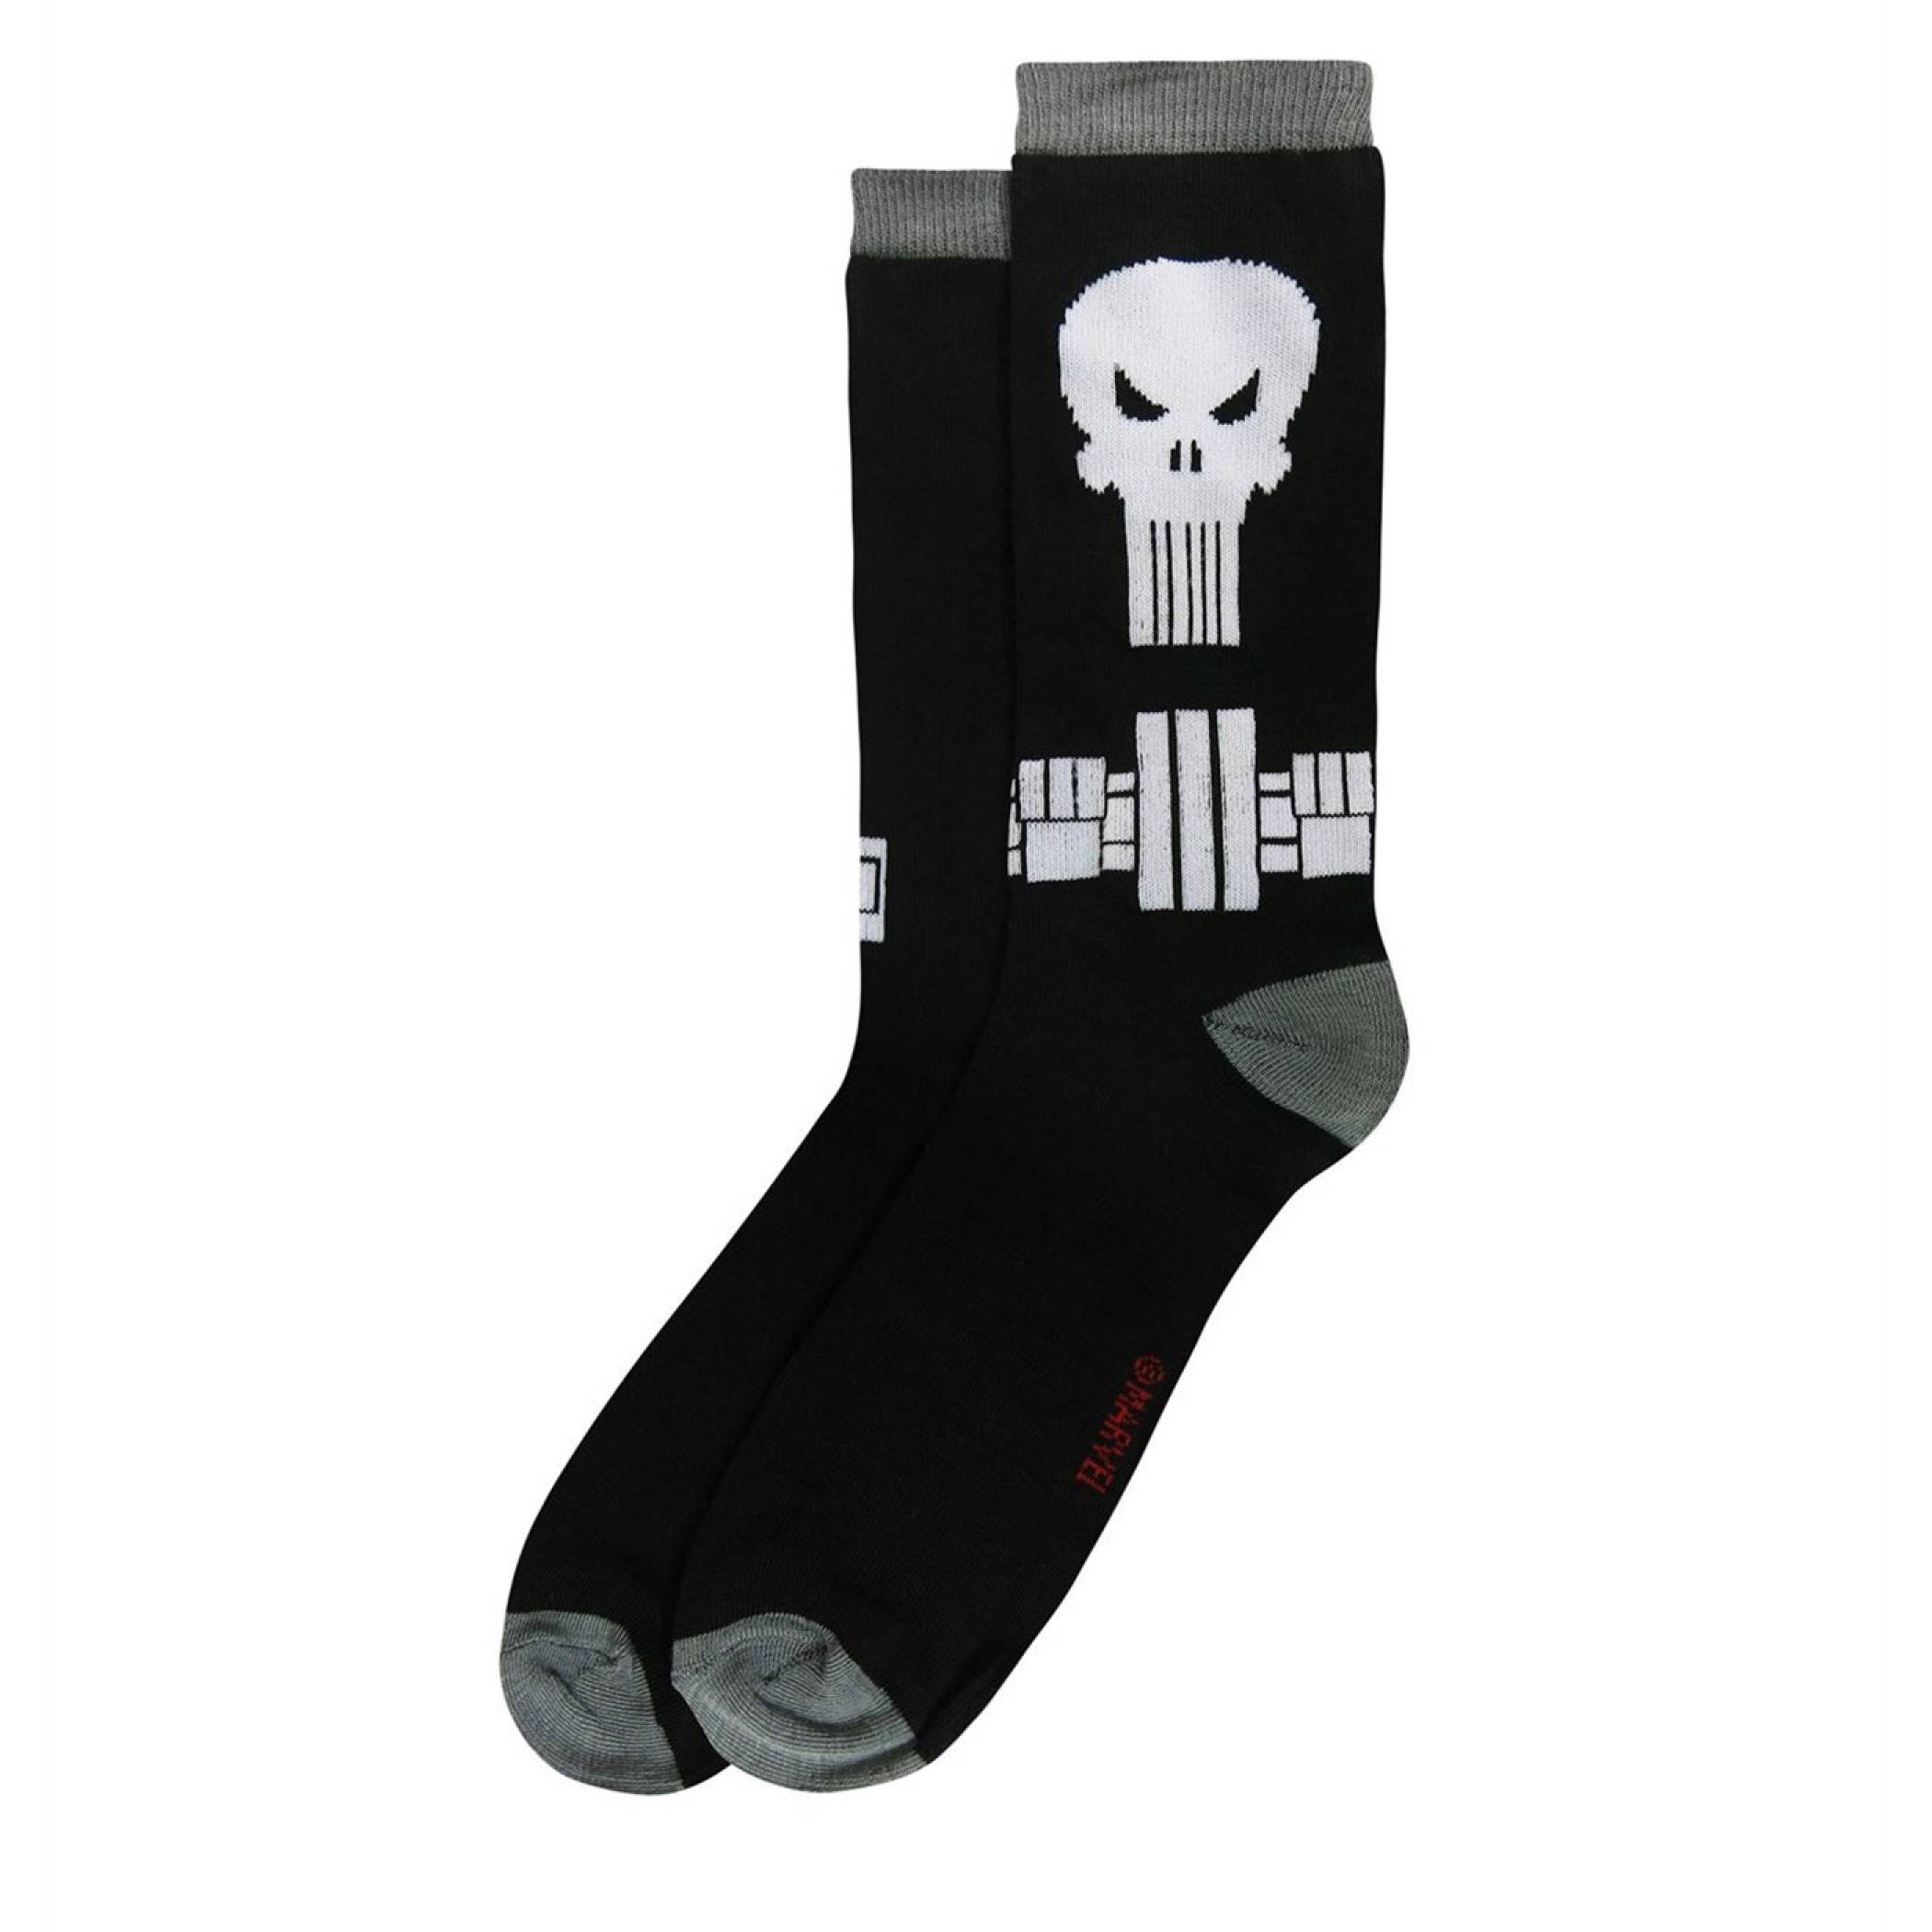 Marvel's The Defenders Symbols 3-Pair Pack of Crew Socks